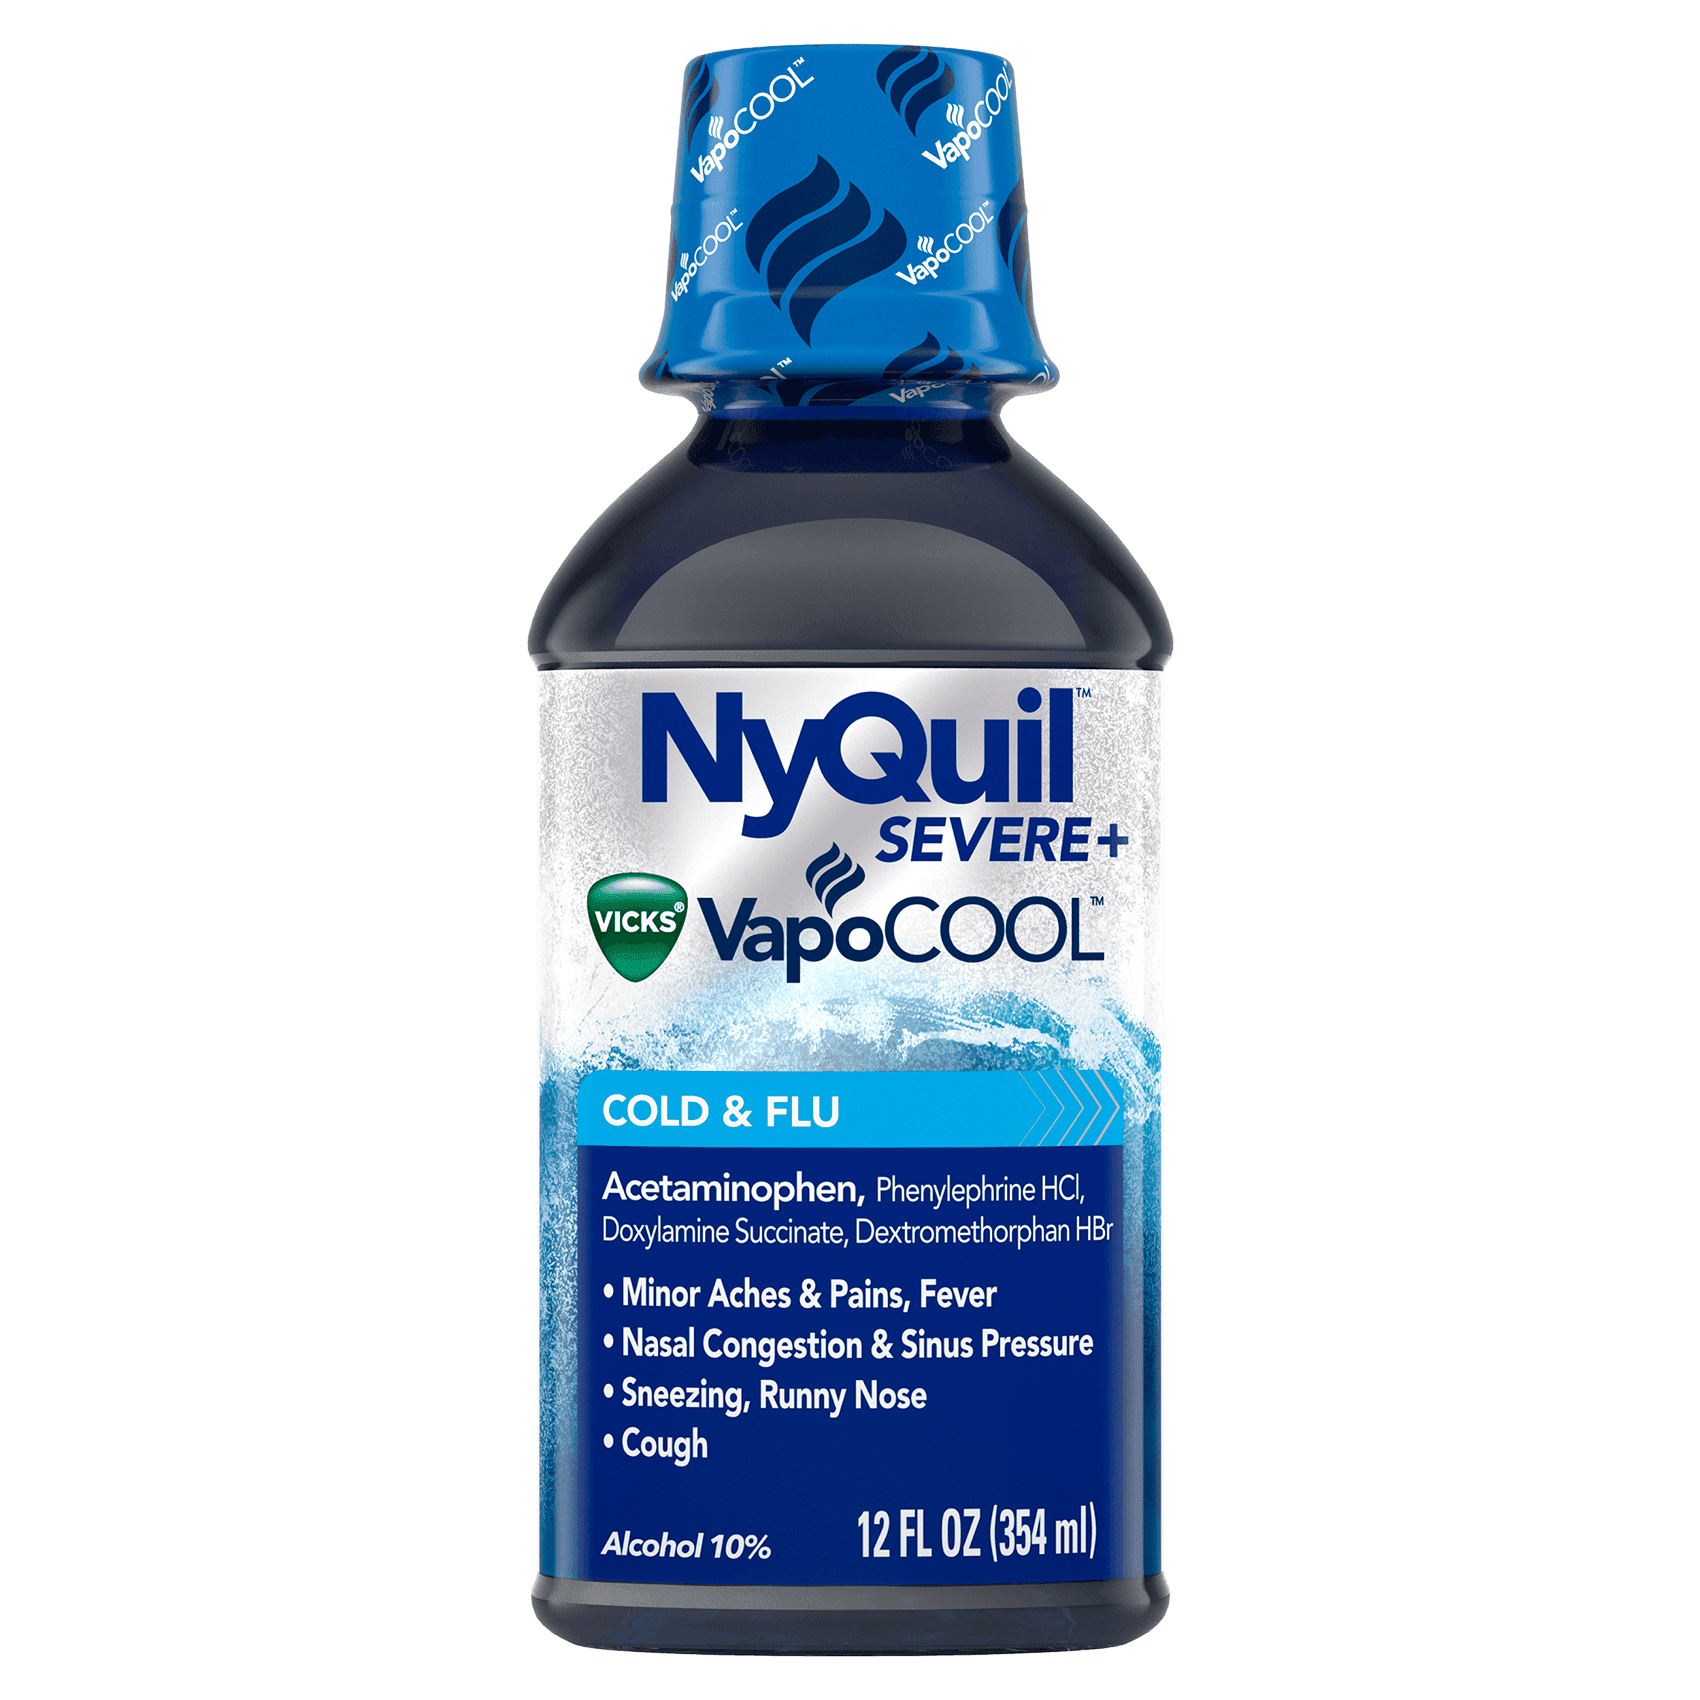 NyQuil Severe+ VapoCool Cold & Flu 12 fl oz